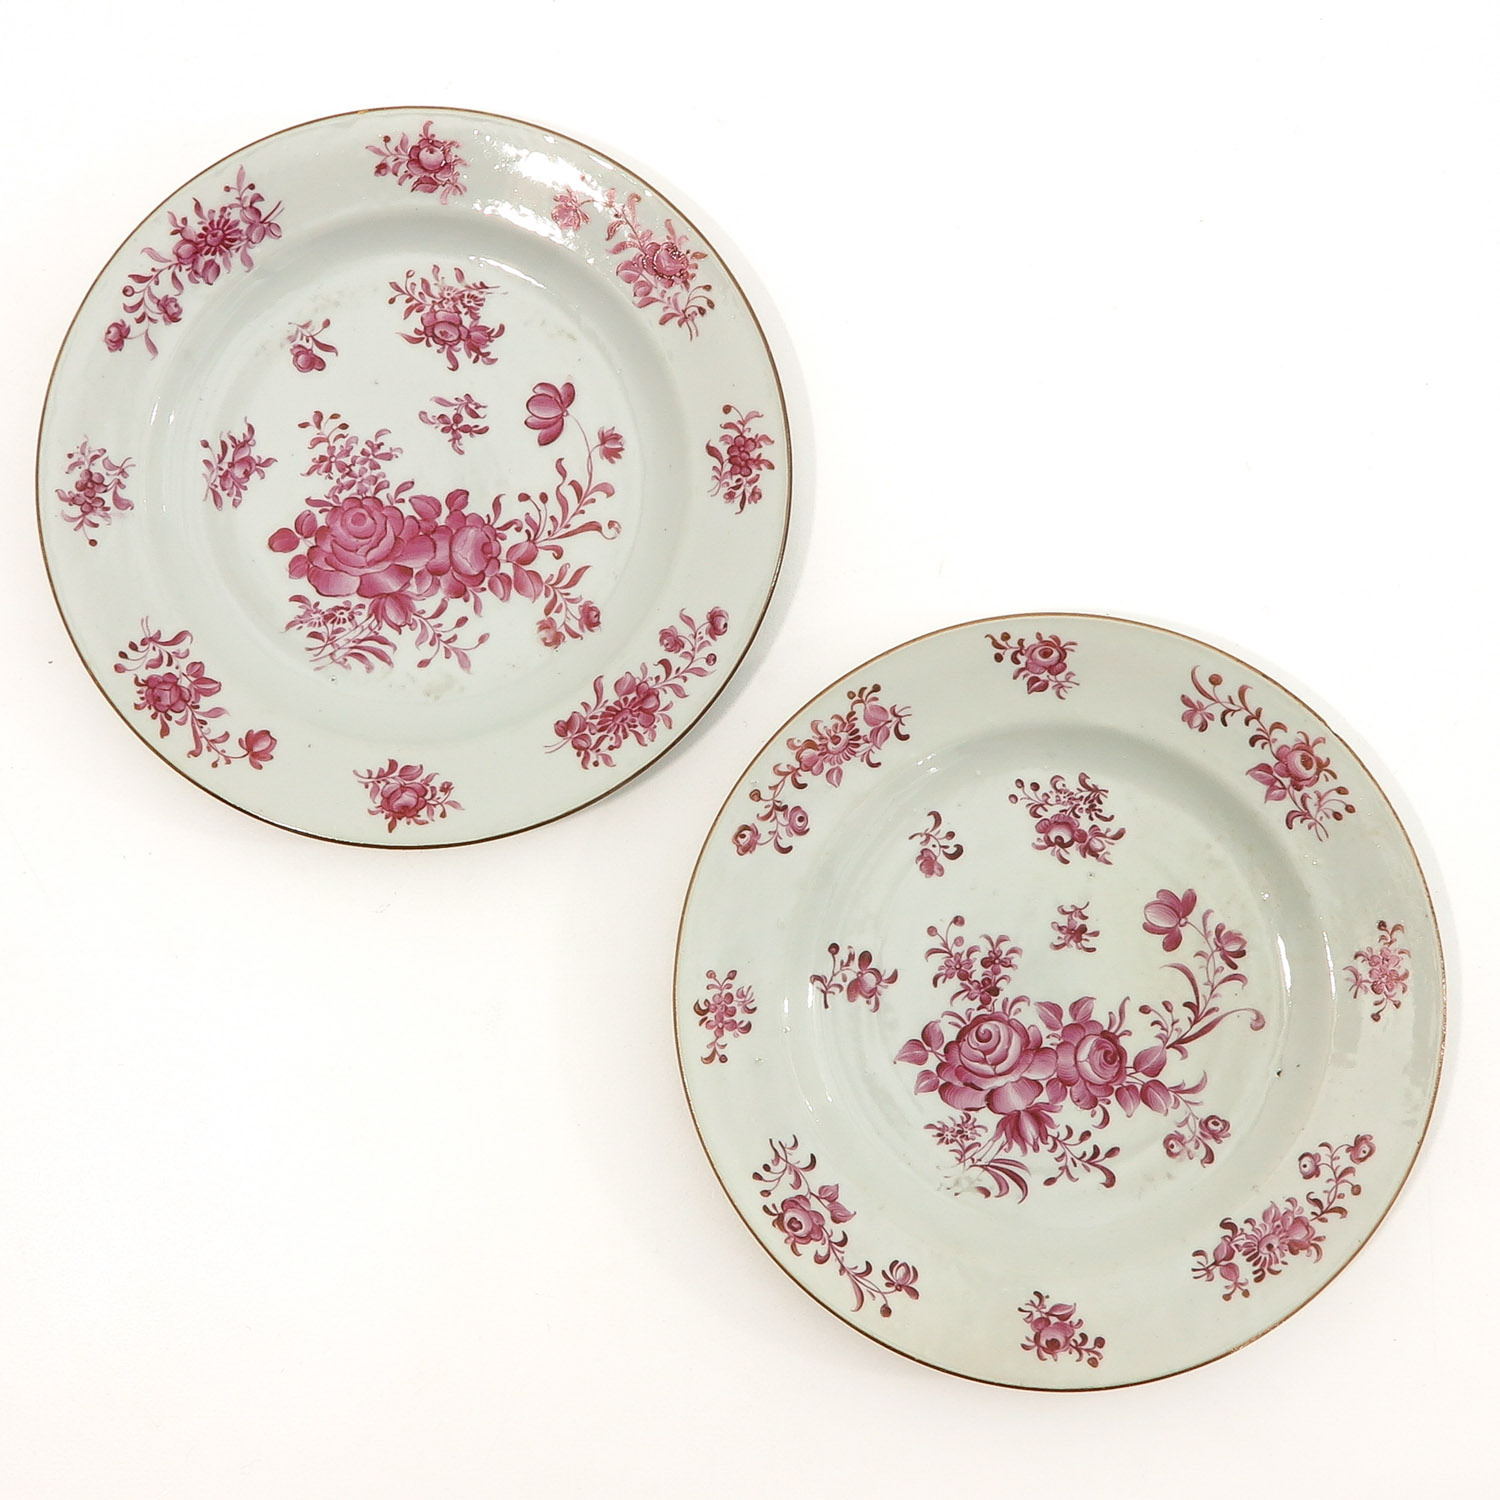 A Collection of 5 Famille Rose Plates - Image 3 of 10